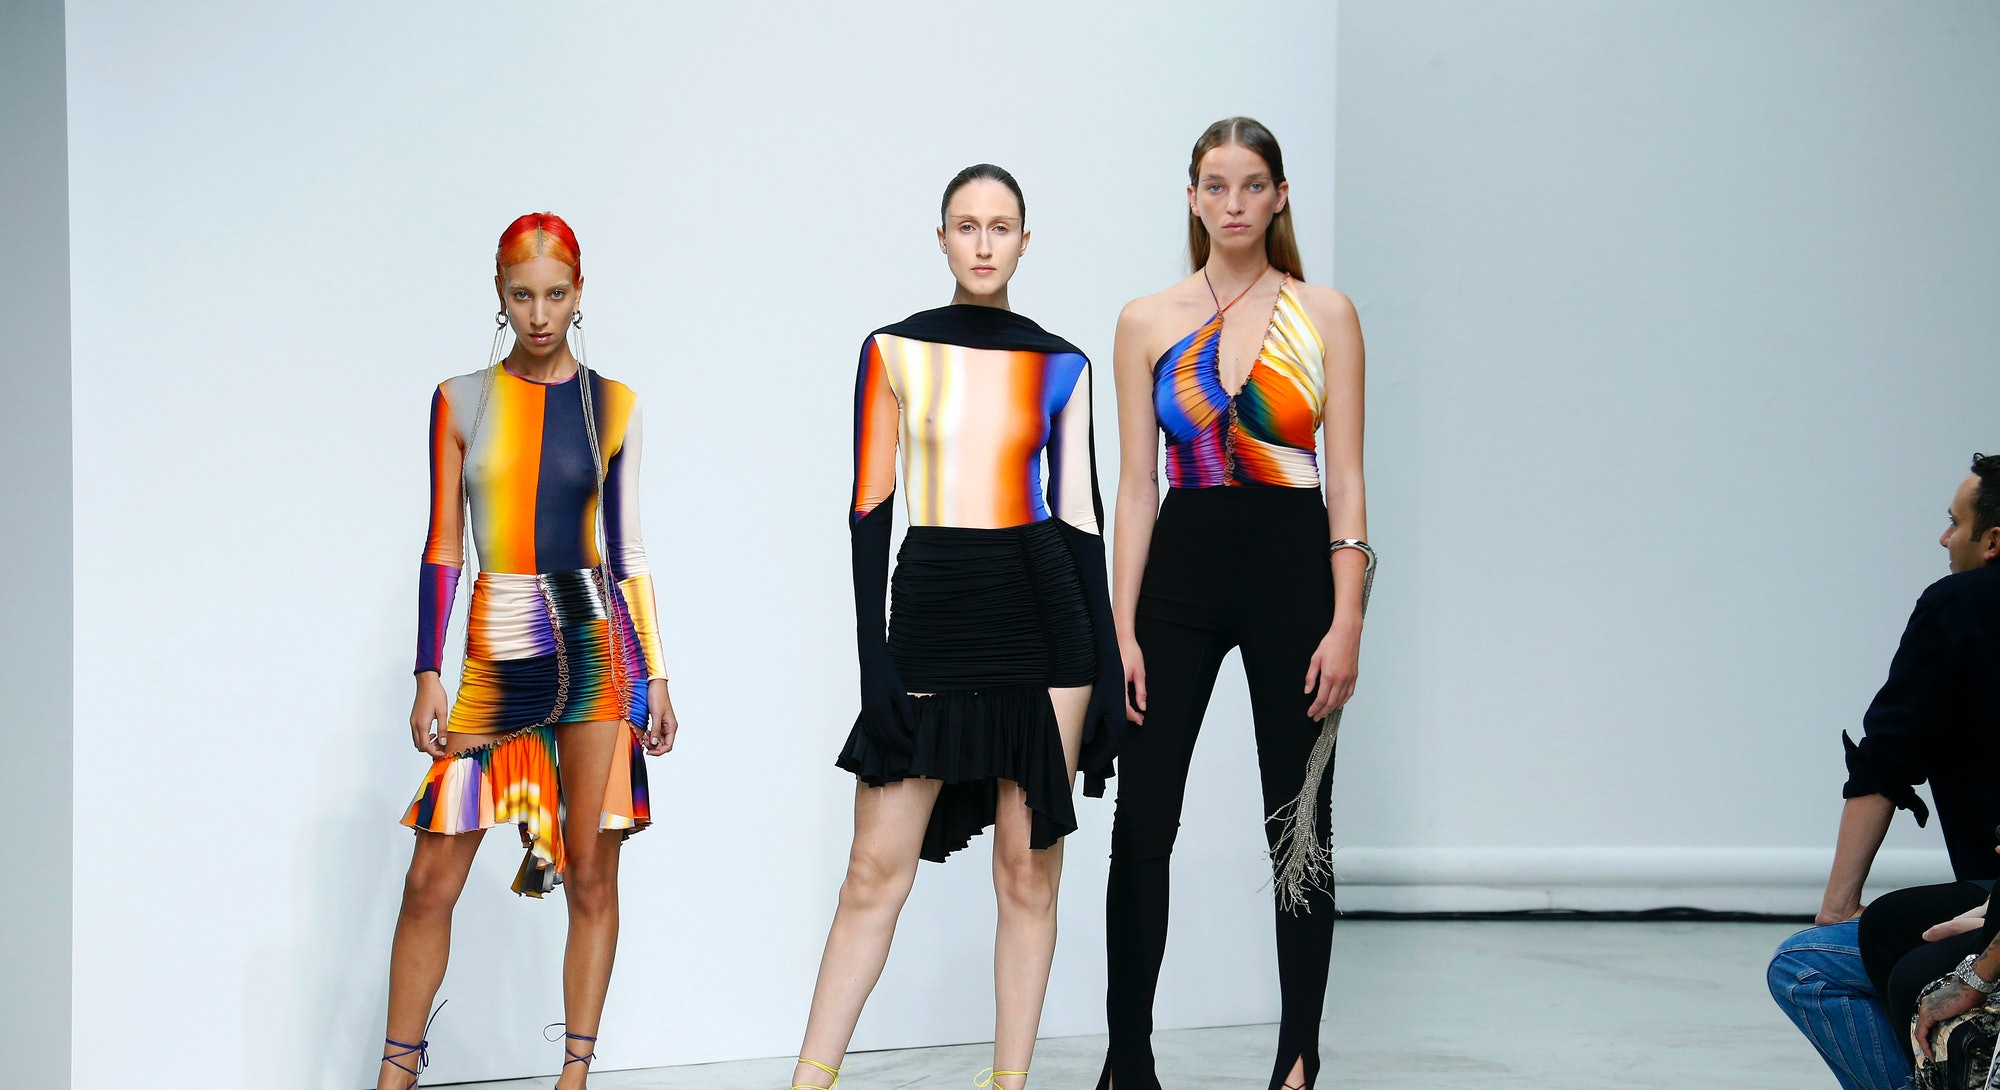 Fashion experts share their thoughts on the designers they think represent the industry's future.